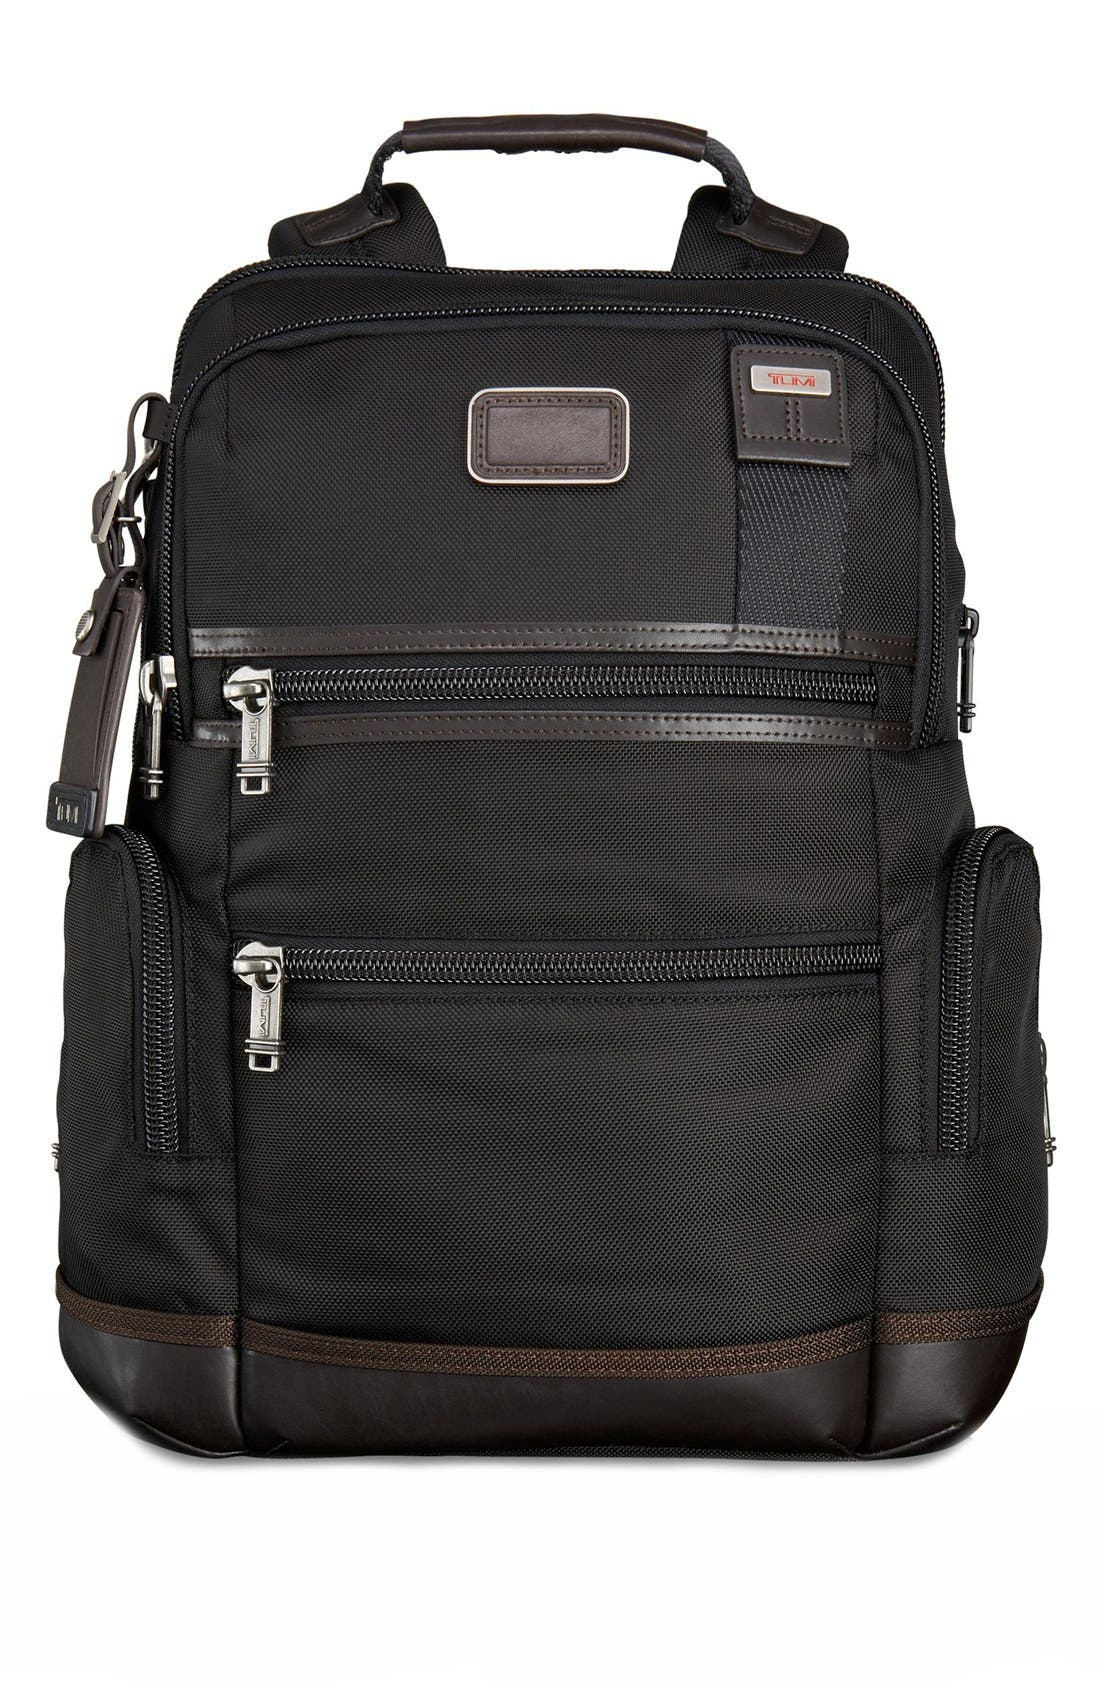 Main Image - Tumi 'Alpha Bravo - Knox' Backpack